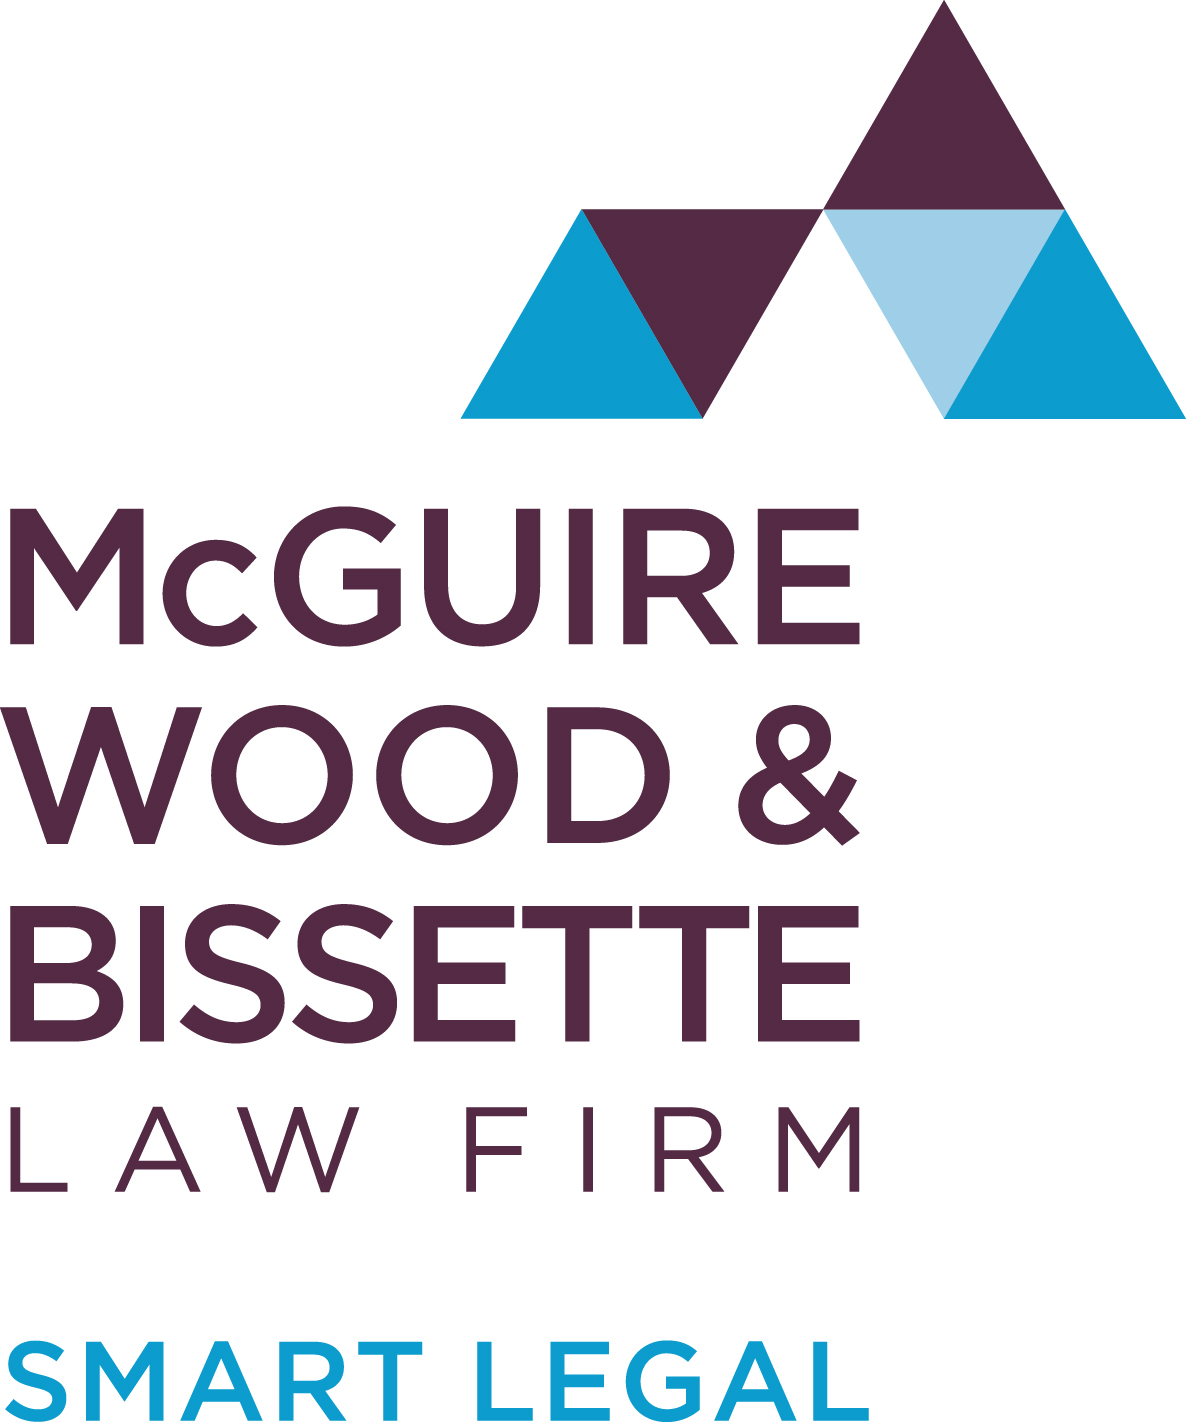 McGuire Wood & Bissette Law Firm